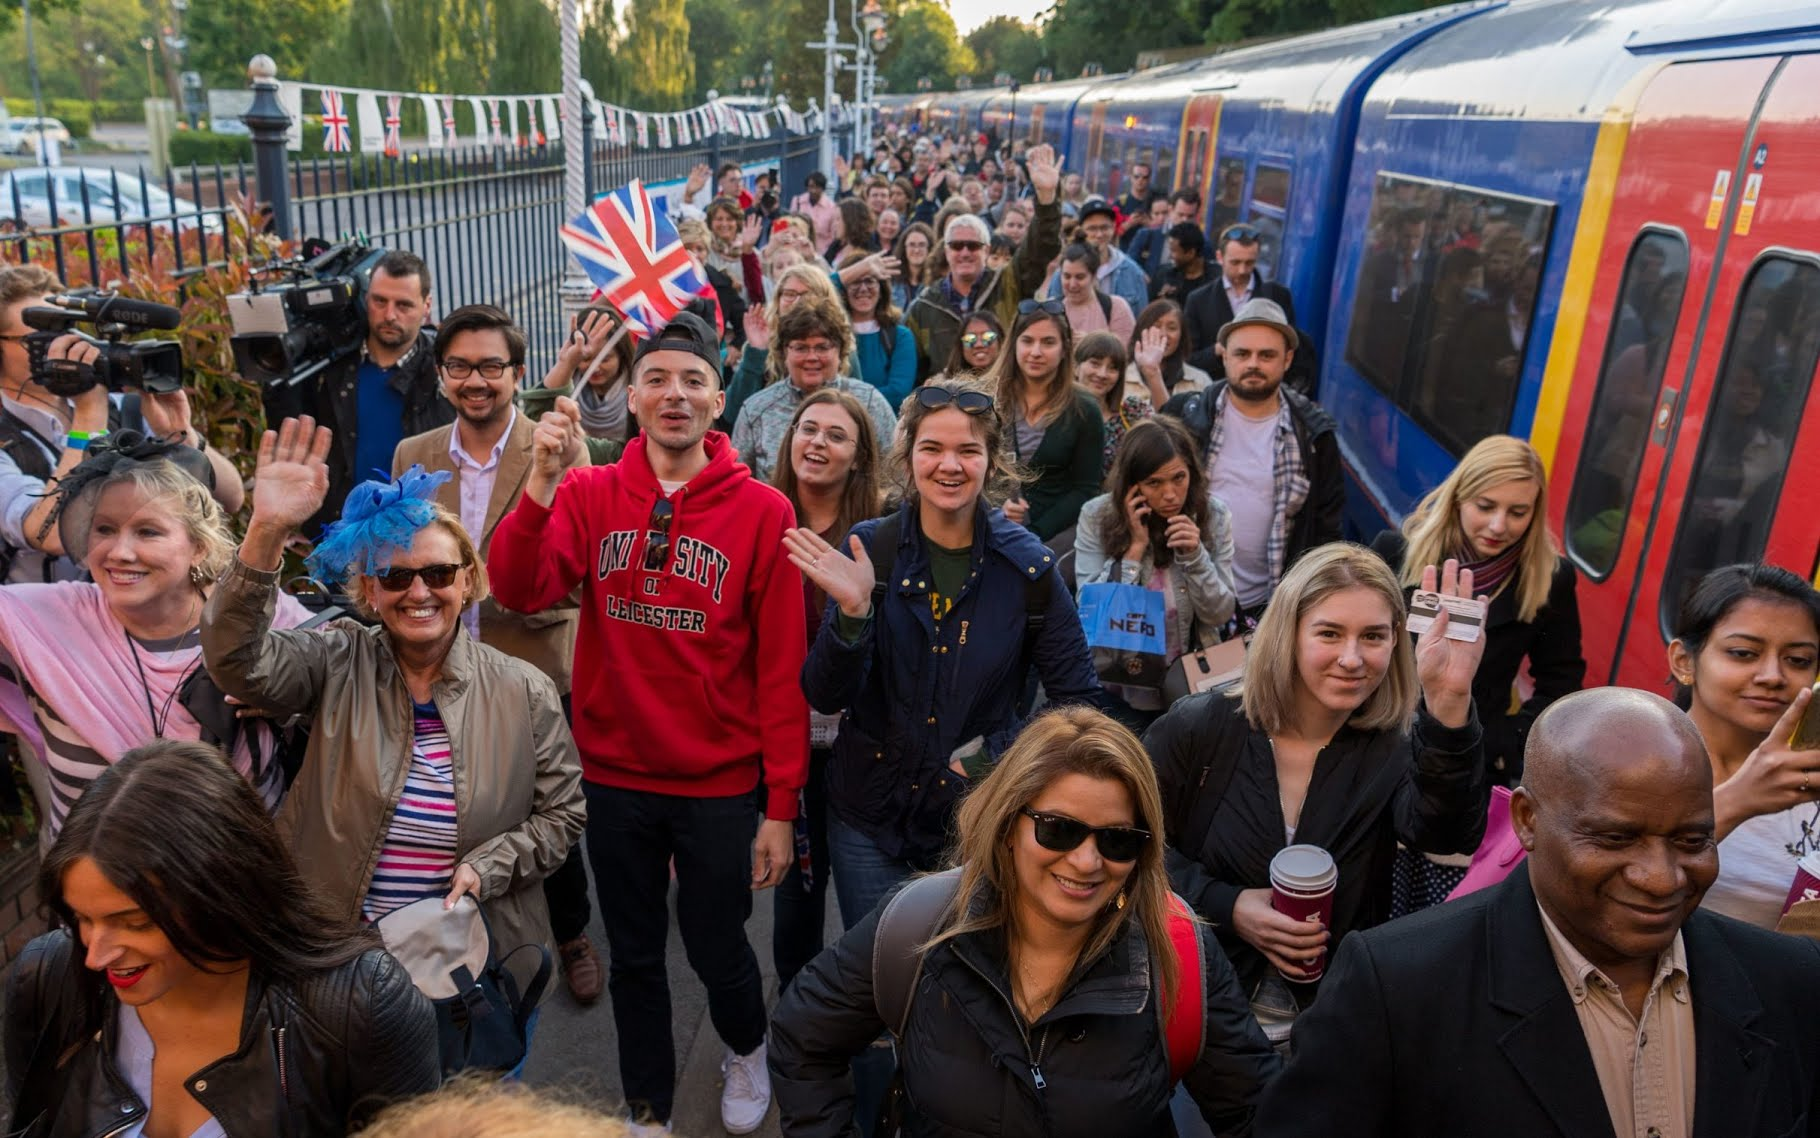 Royal fans arrive at Windsor and Eton Riverside Station